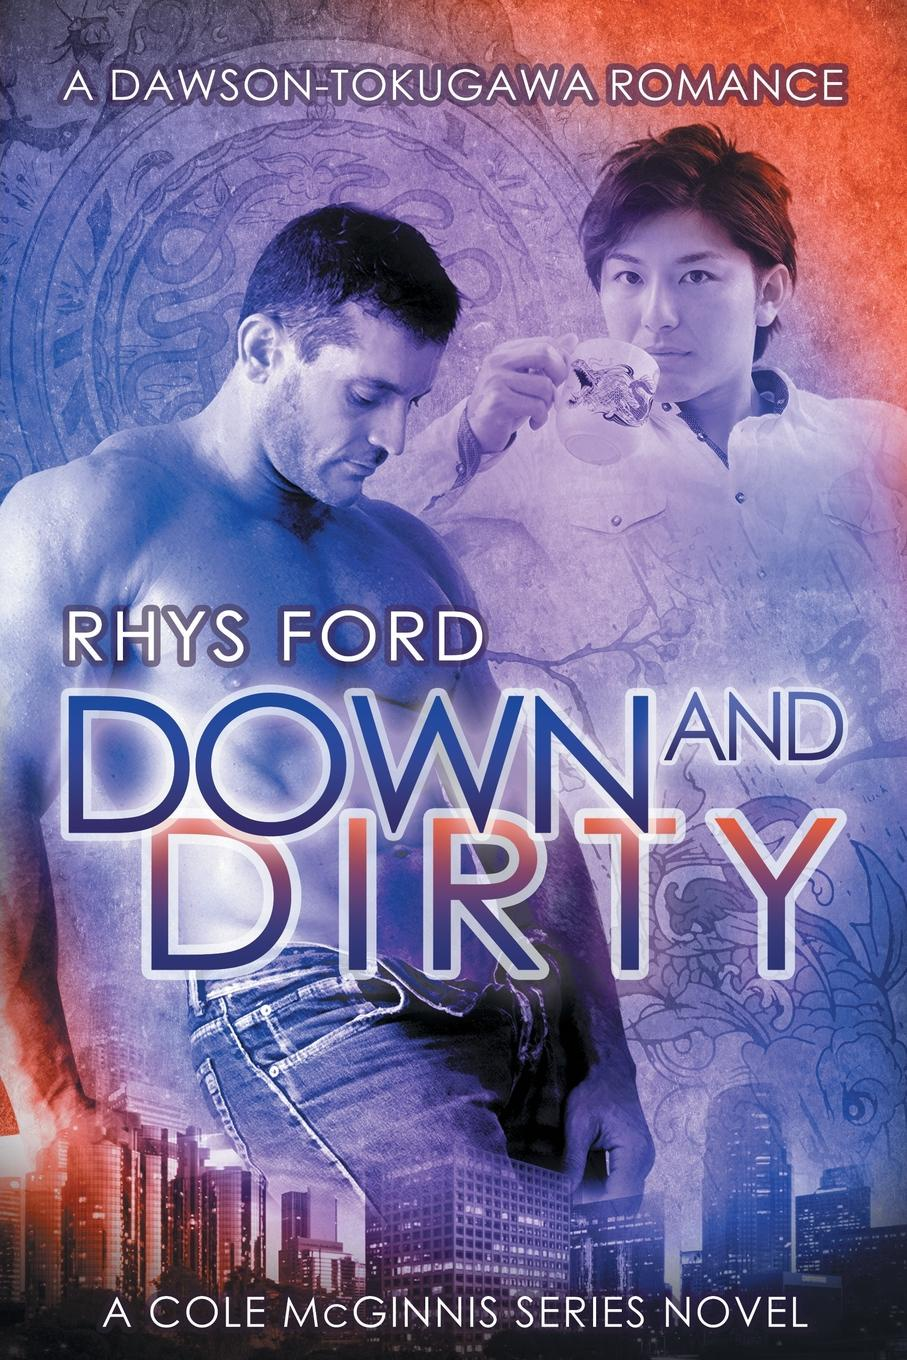 Rhys Ford Down and Dirty looking for trouble